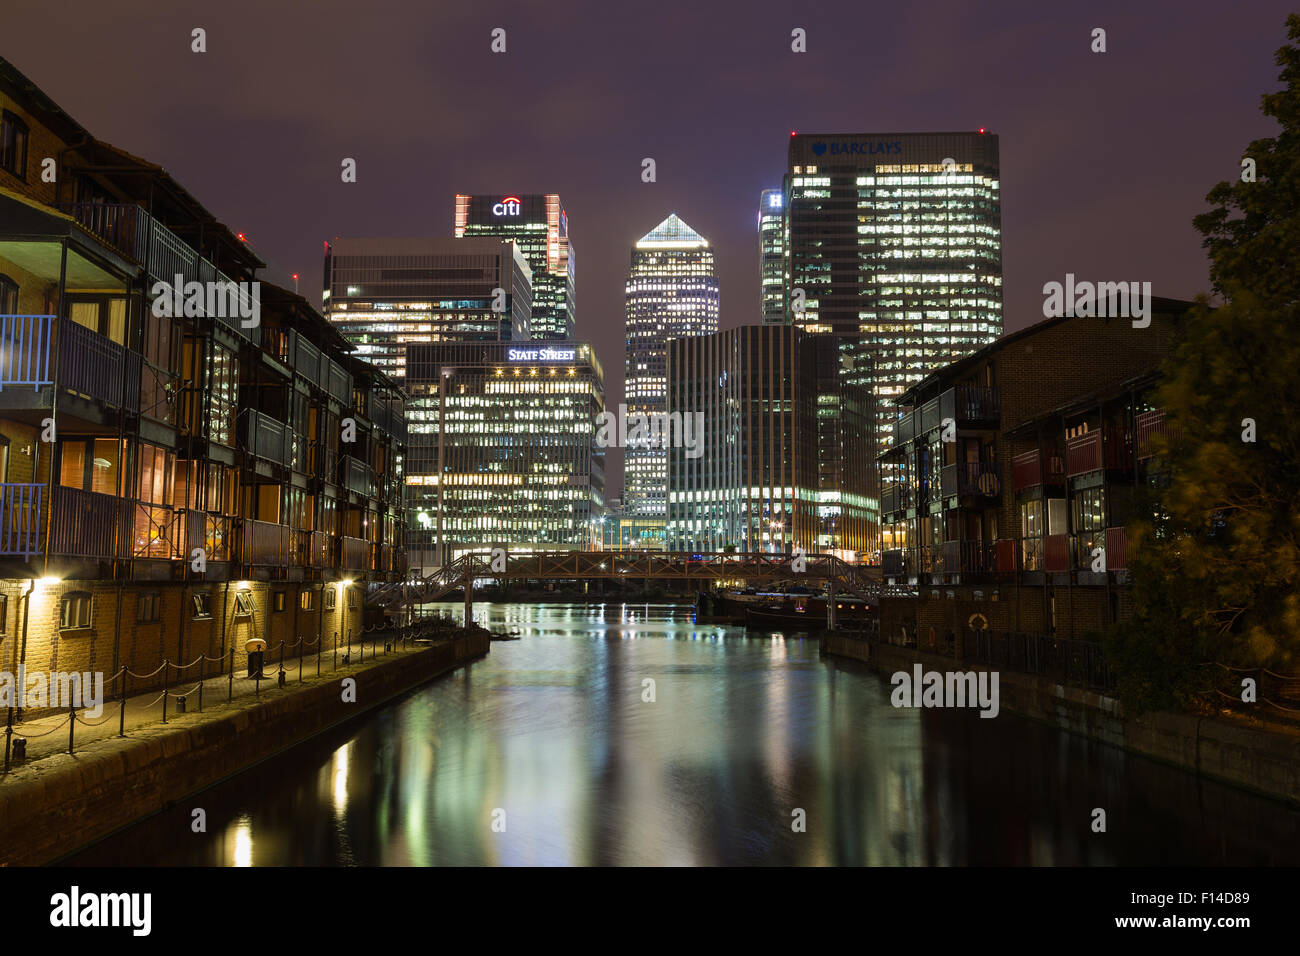 LONDON, UK - 16TH JULY 2015: The outside of Canary Wharf in London at night showing the office buildings and reflections Stock Photo